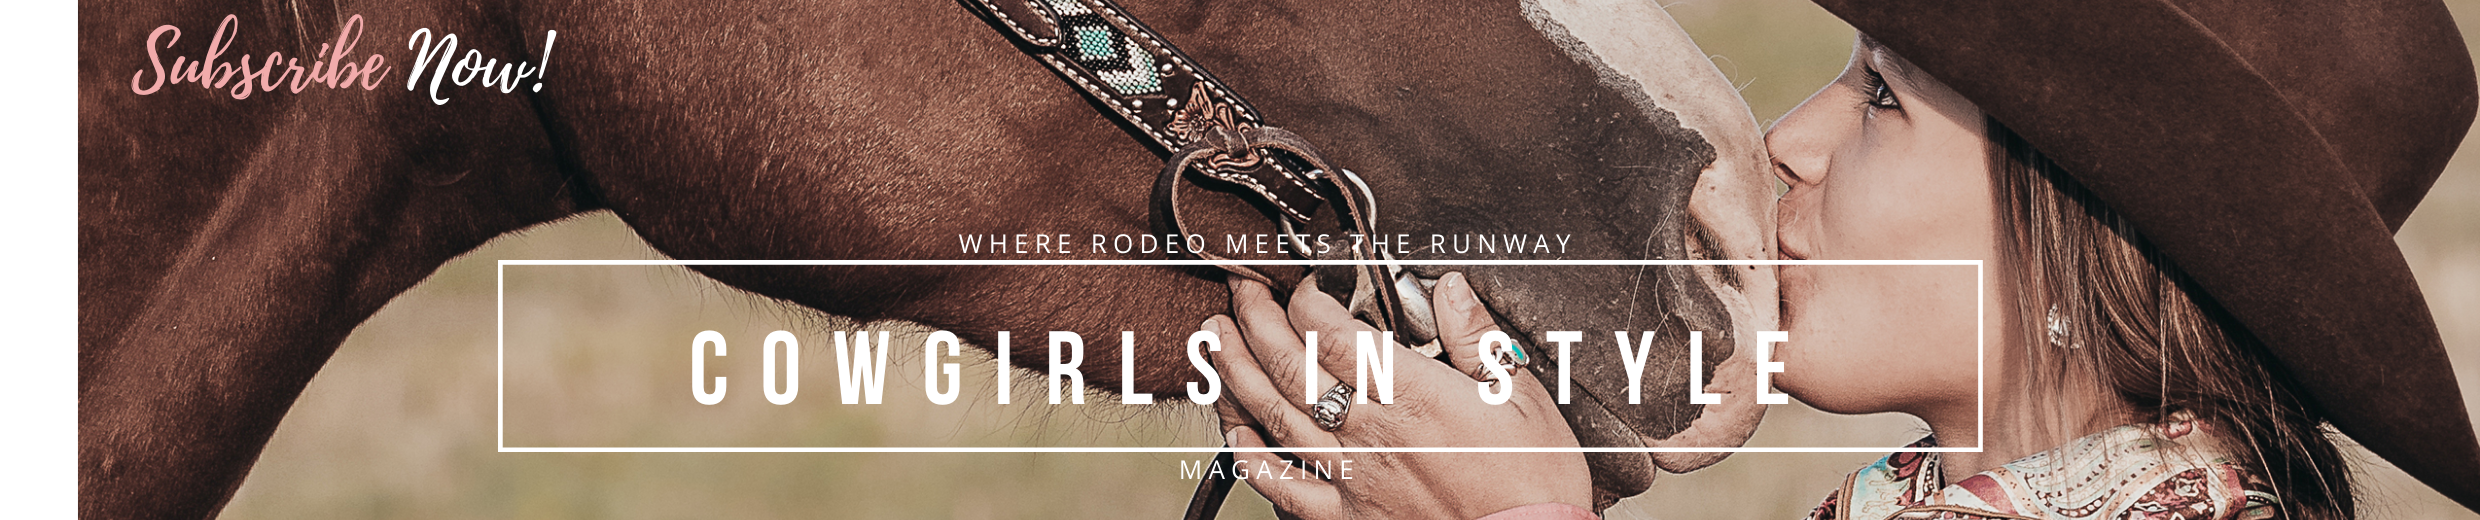 The Glamorous Cowgirl - Cowgirls In Style Magazine